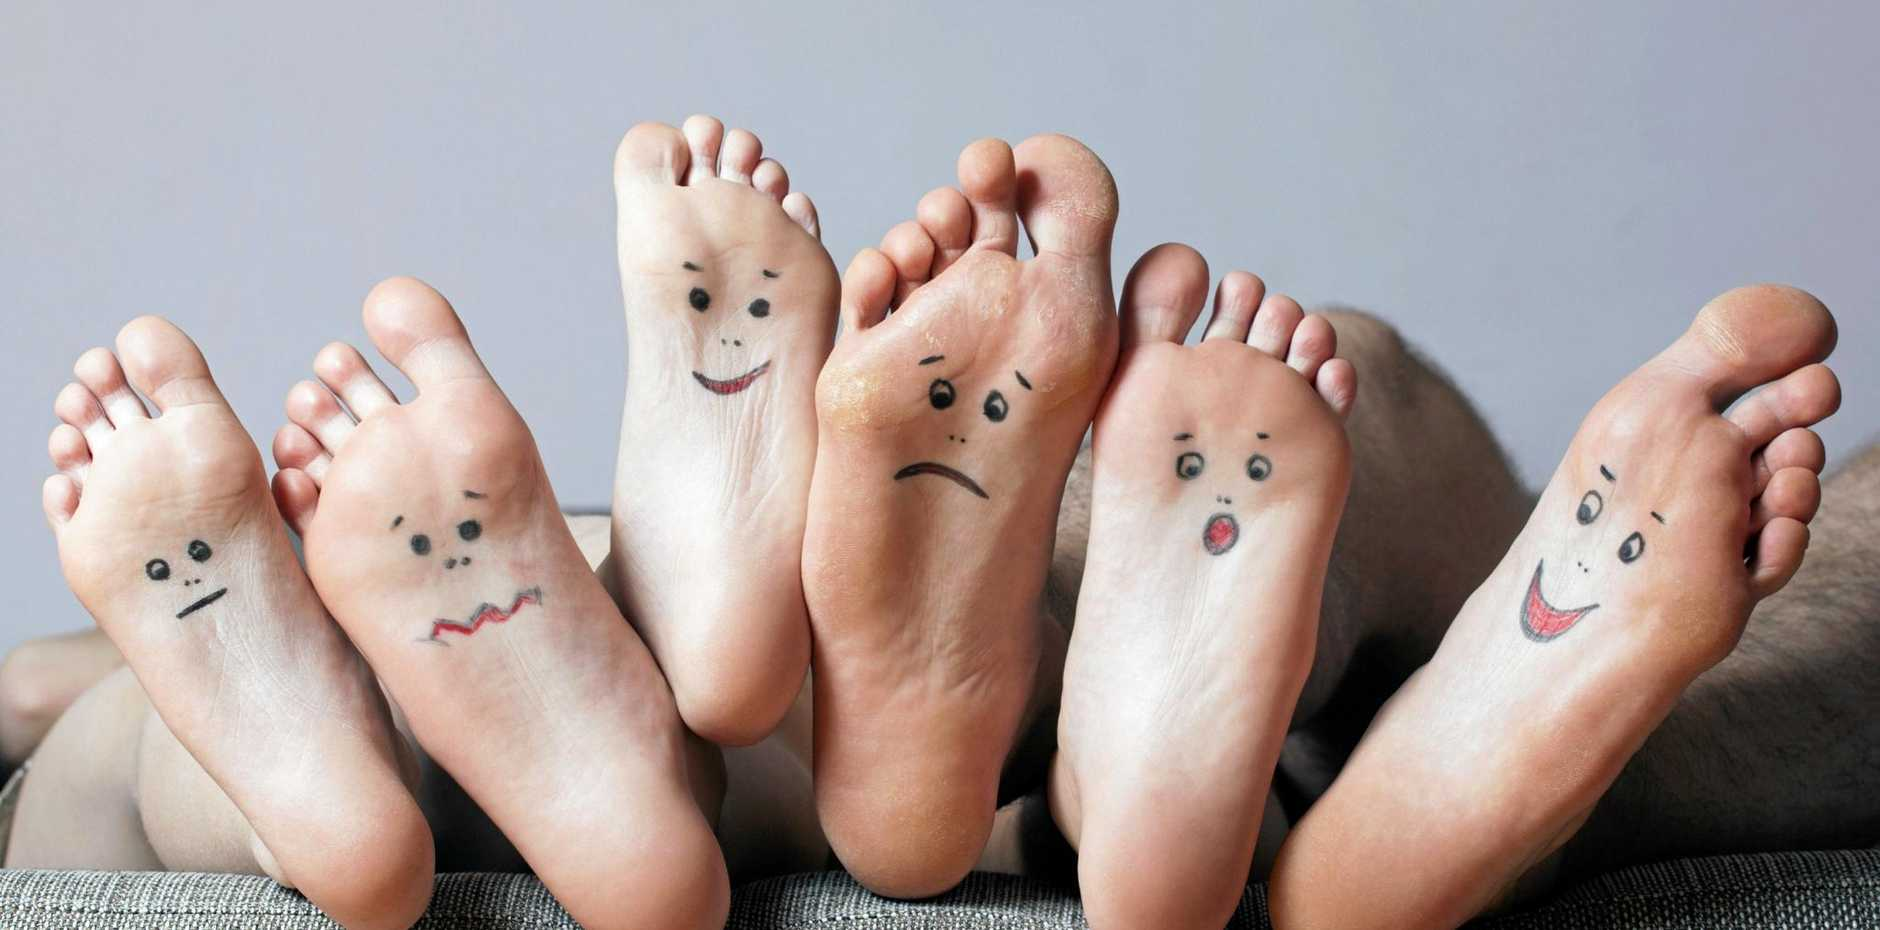 SOLE NEWS: New research shows a link between foot pain and mental health.